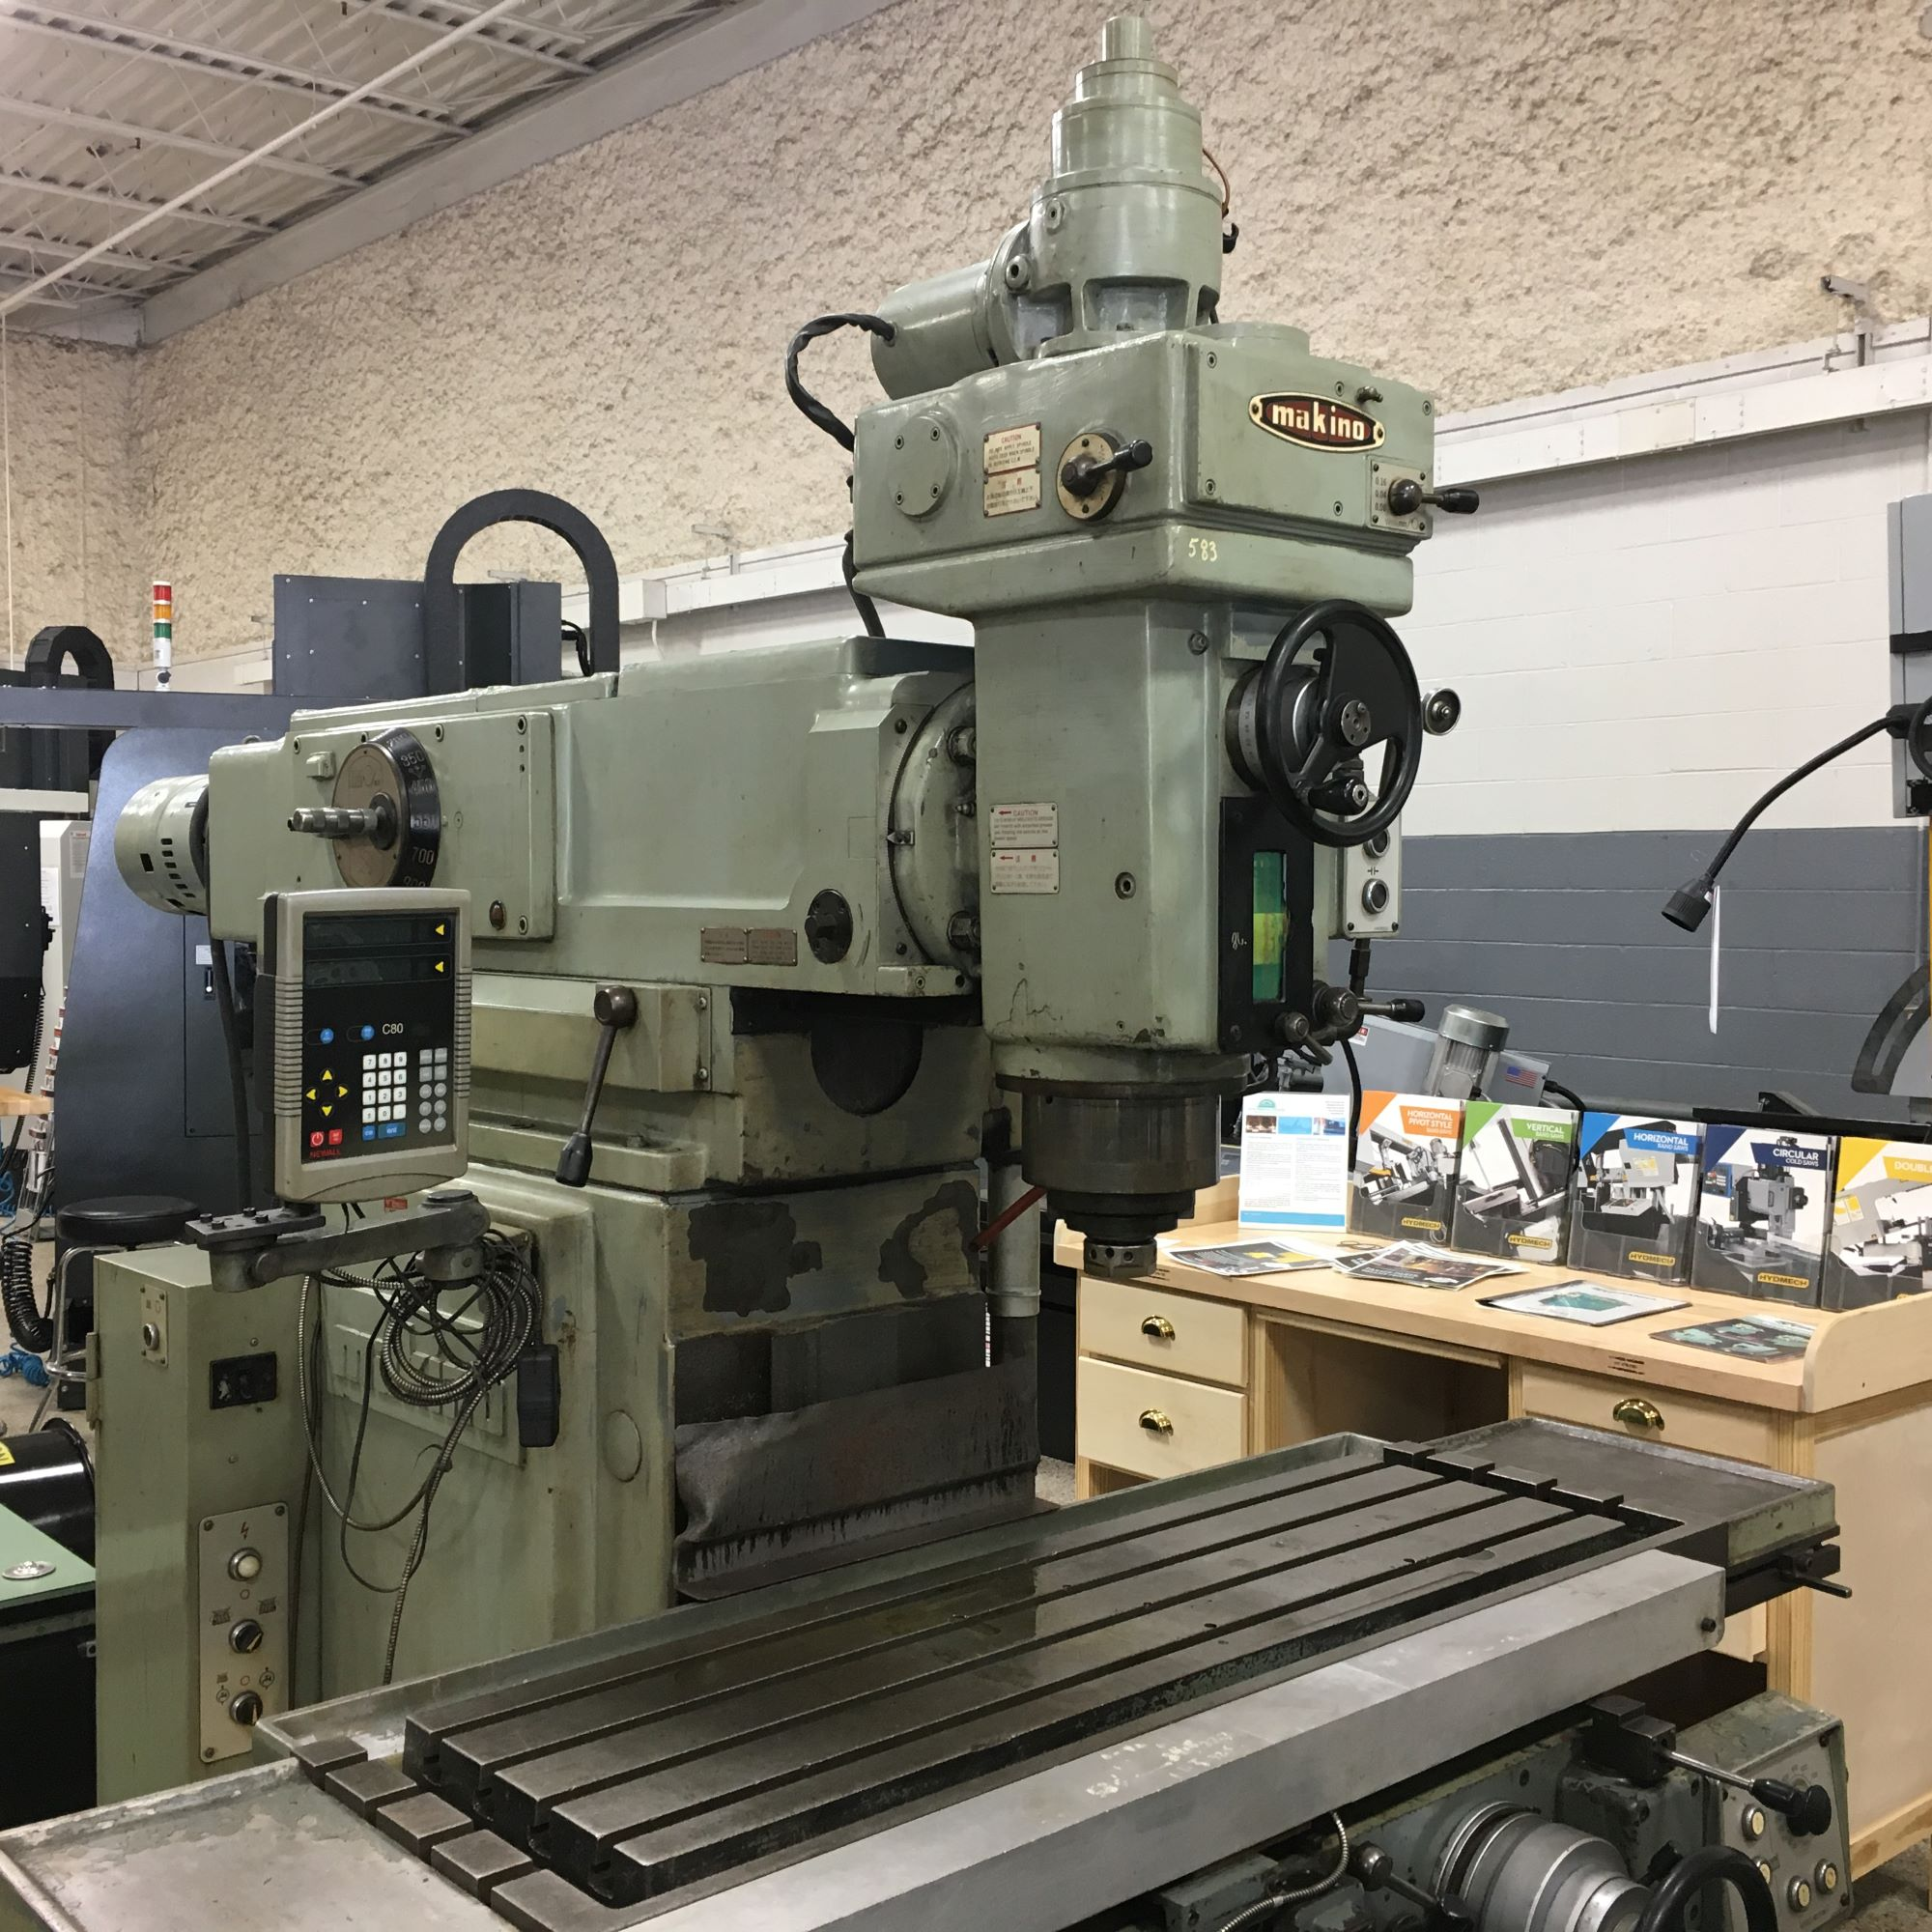 Makino Model BGIIJ-85 Vertical Mill,  s/n B62-1883. New 1987.